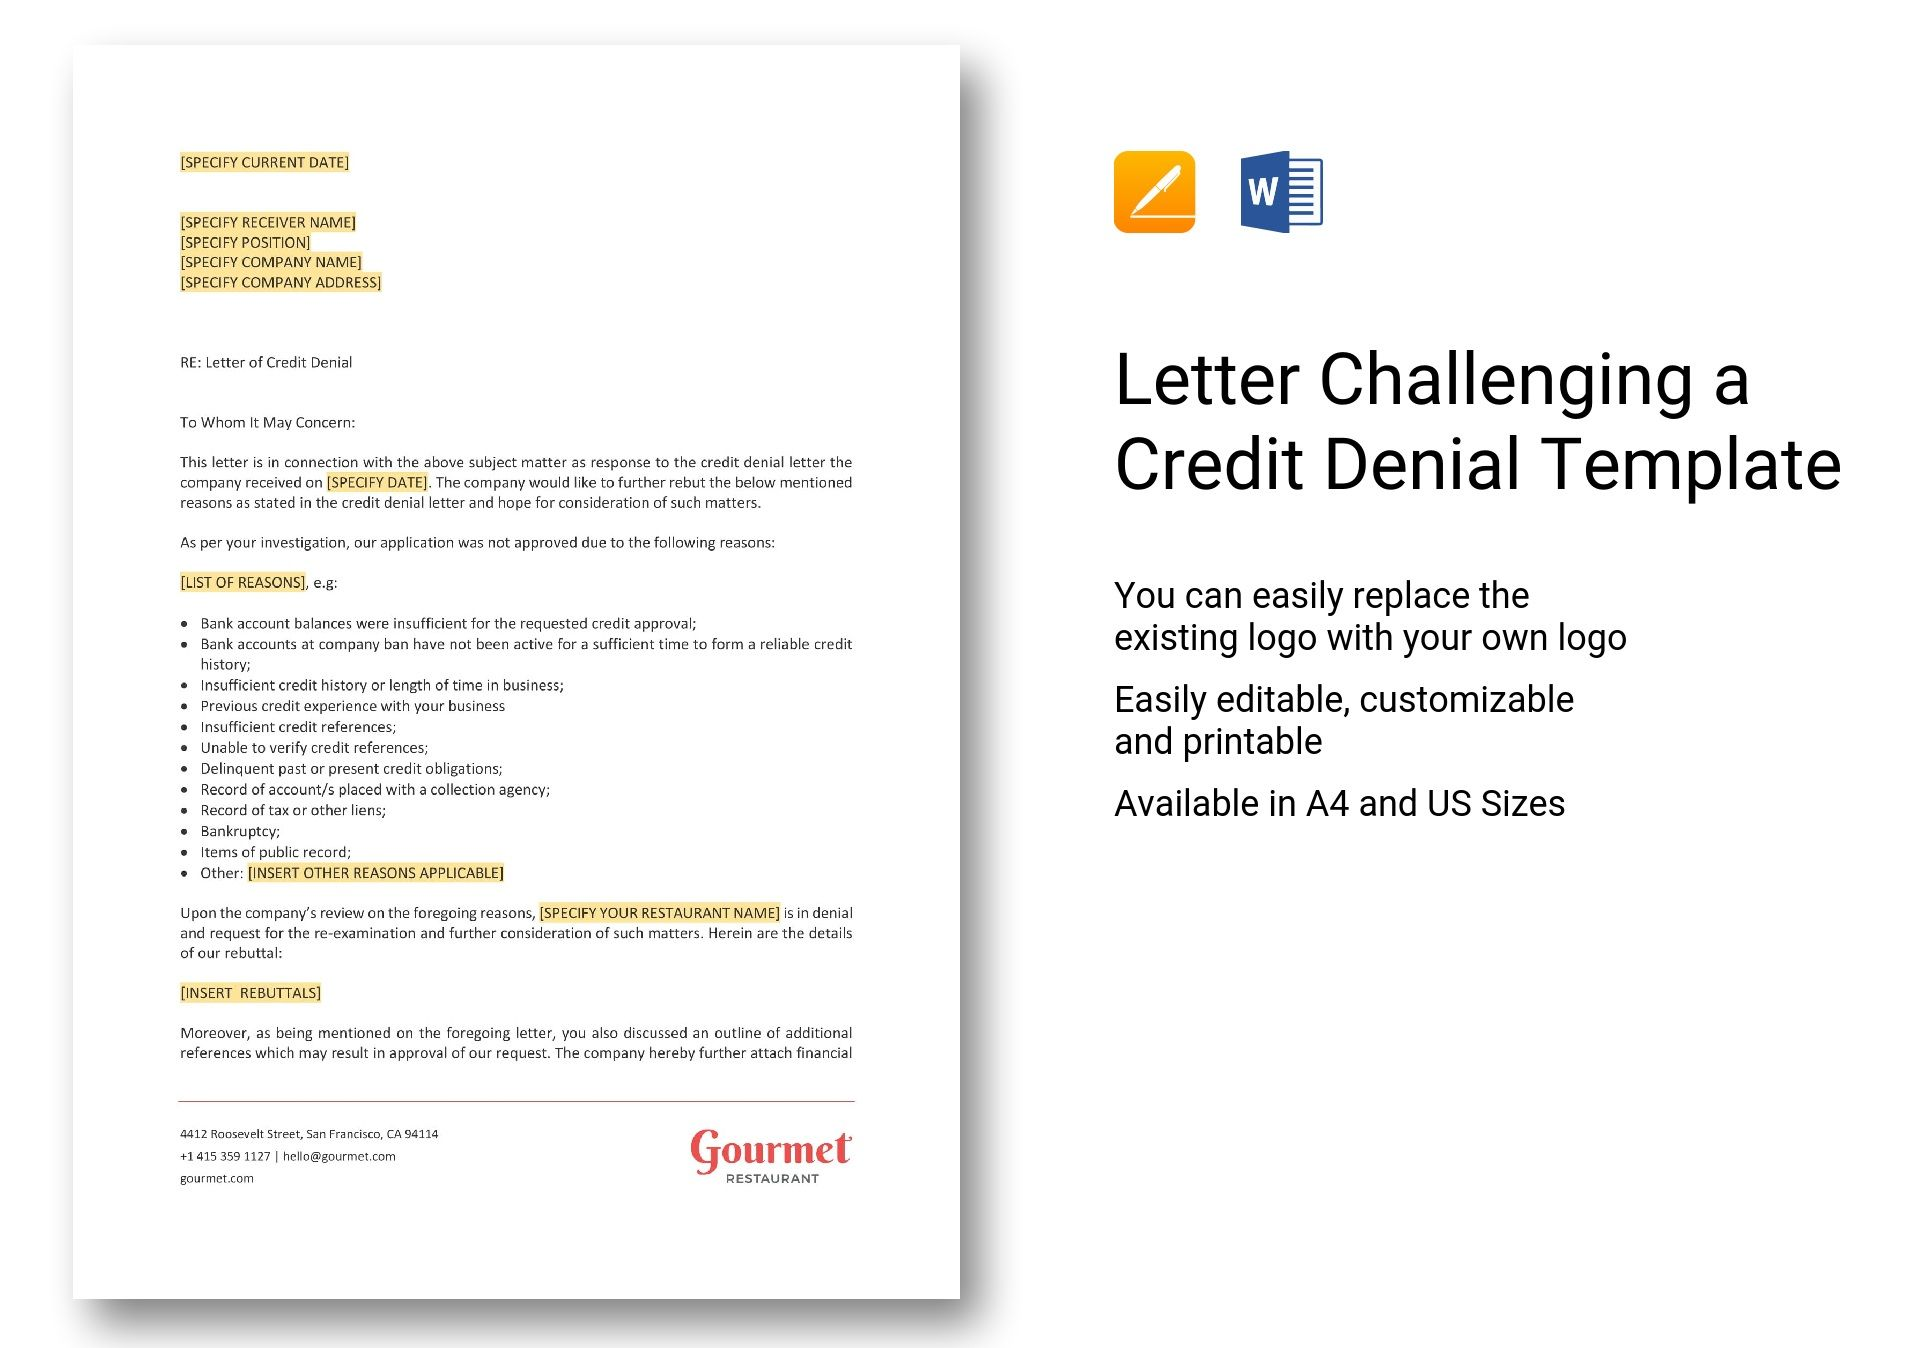 Letter Challenging a Credit Denial